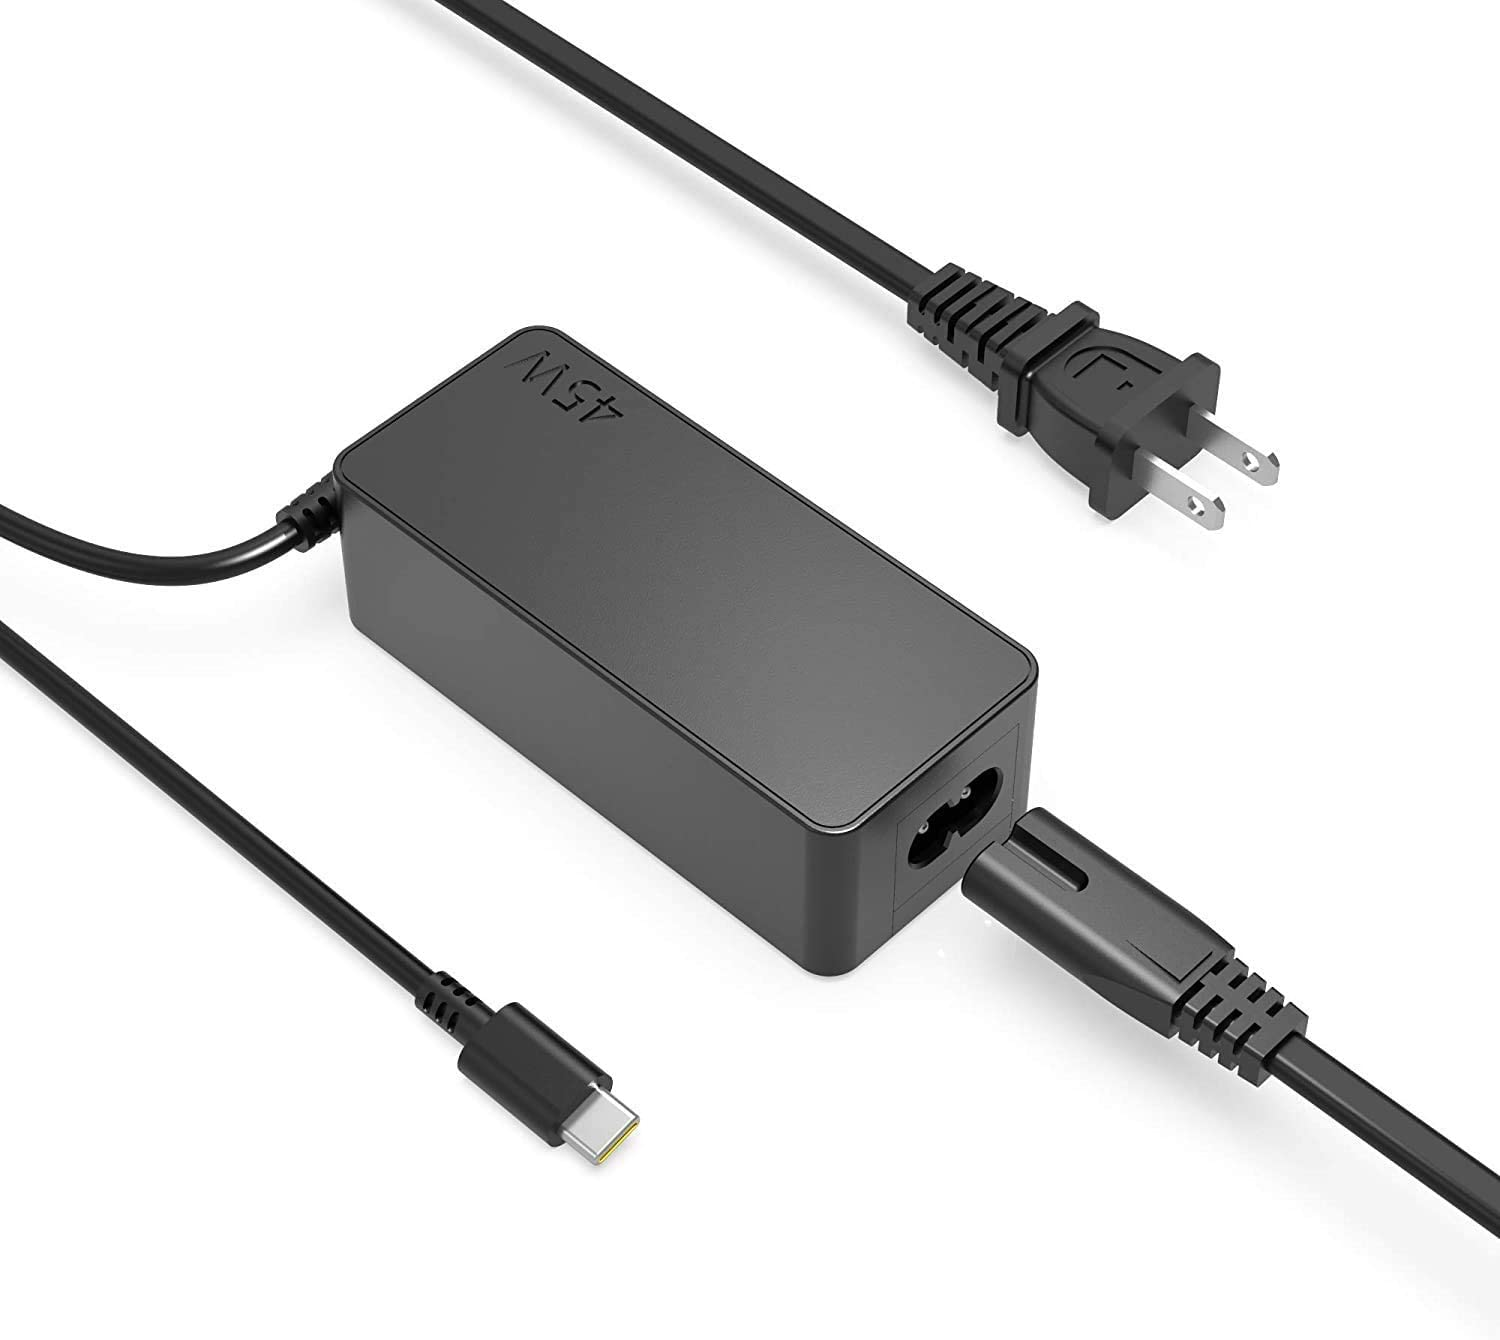 45W AC Charger Fit for Lenovo Ideapad Yoga 5G 6 5G-14Q8CX05 6-13ARE05 6-13ALC6, ThinkPad P15s P14s C13 Yoga Gen 1 2, X12 Detachable Gen 1 Type C USB Laptop Power Supply Adapter Cord